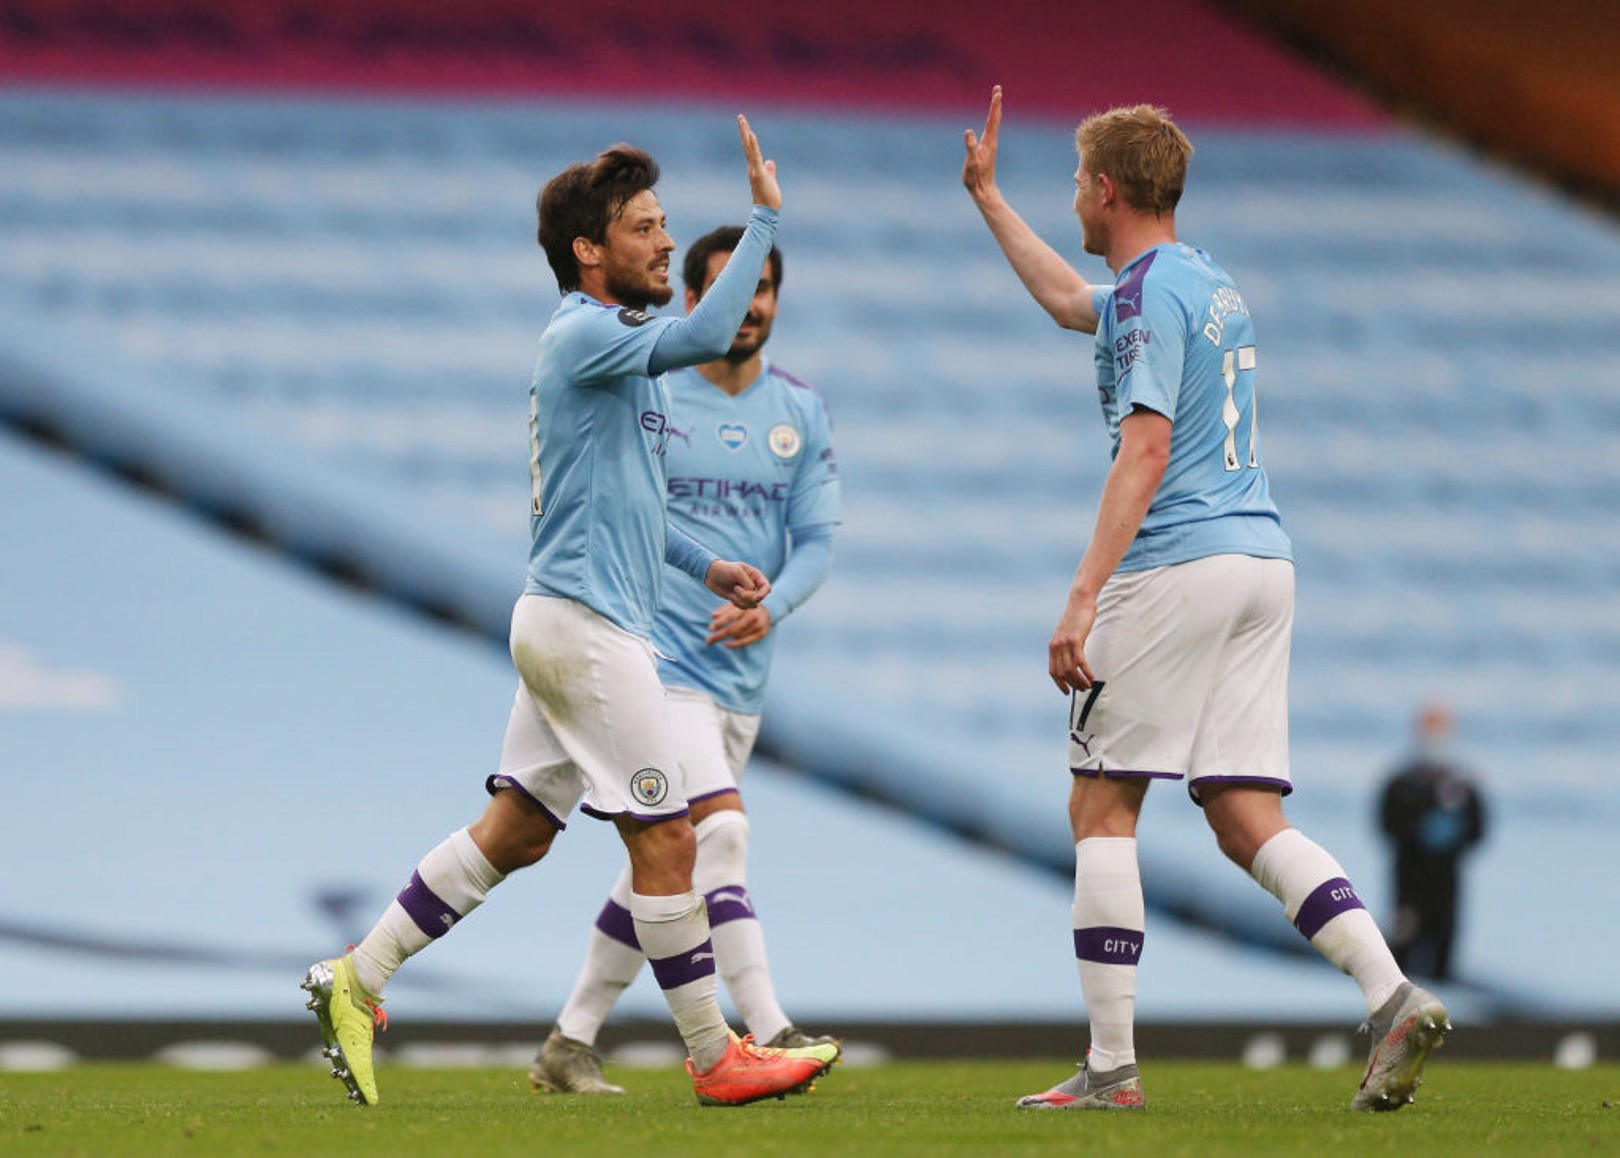 De Bruyne and Silva in PFA Team of the Year